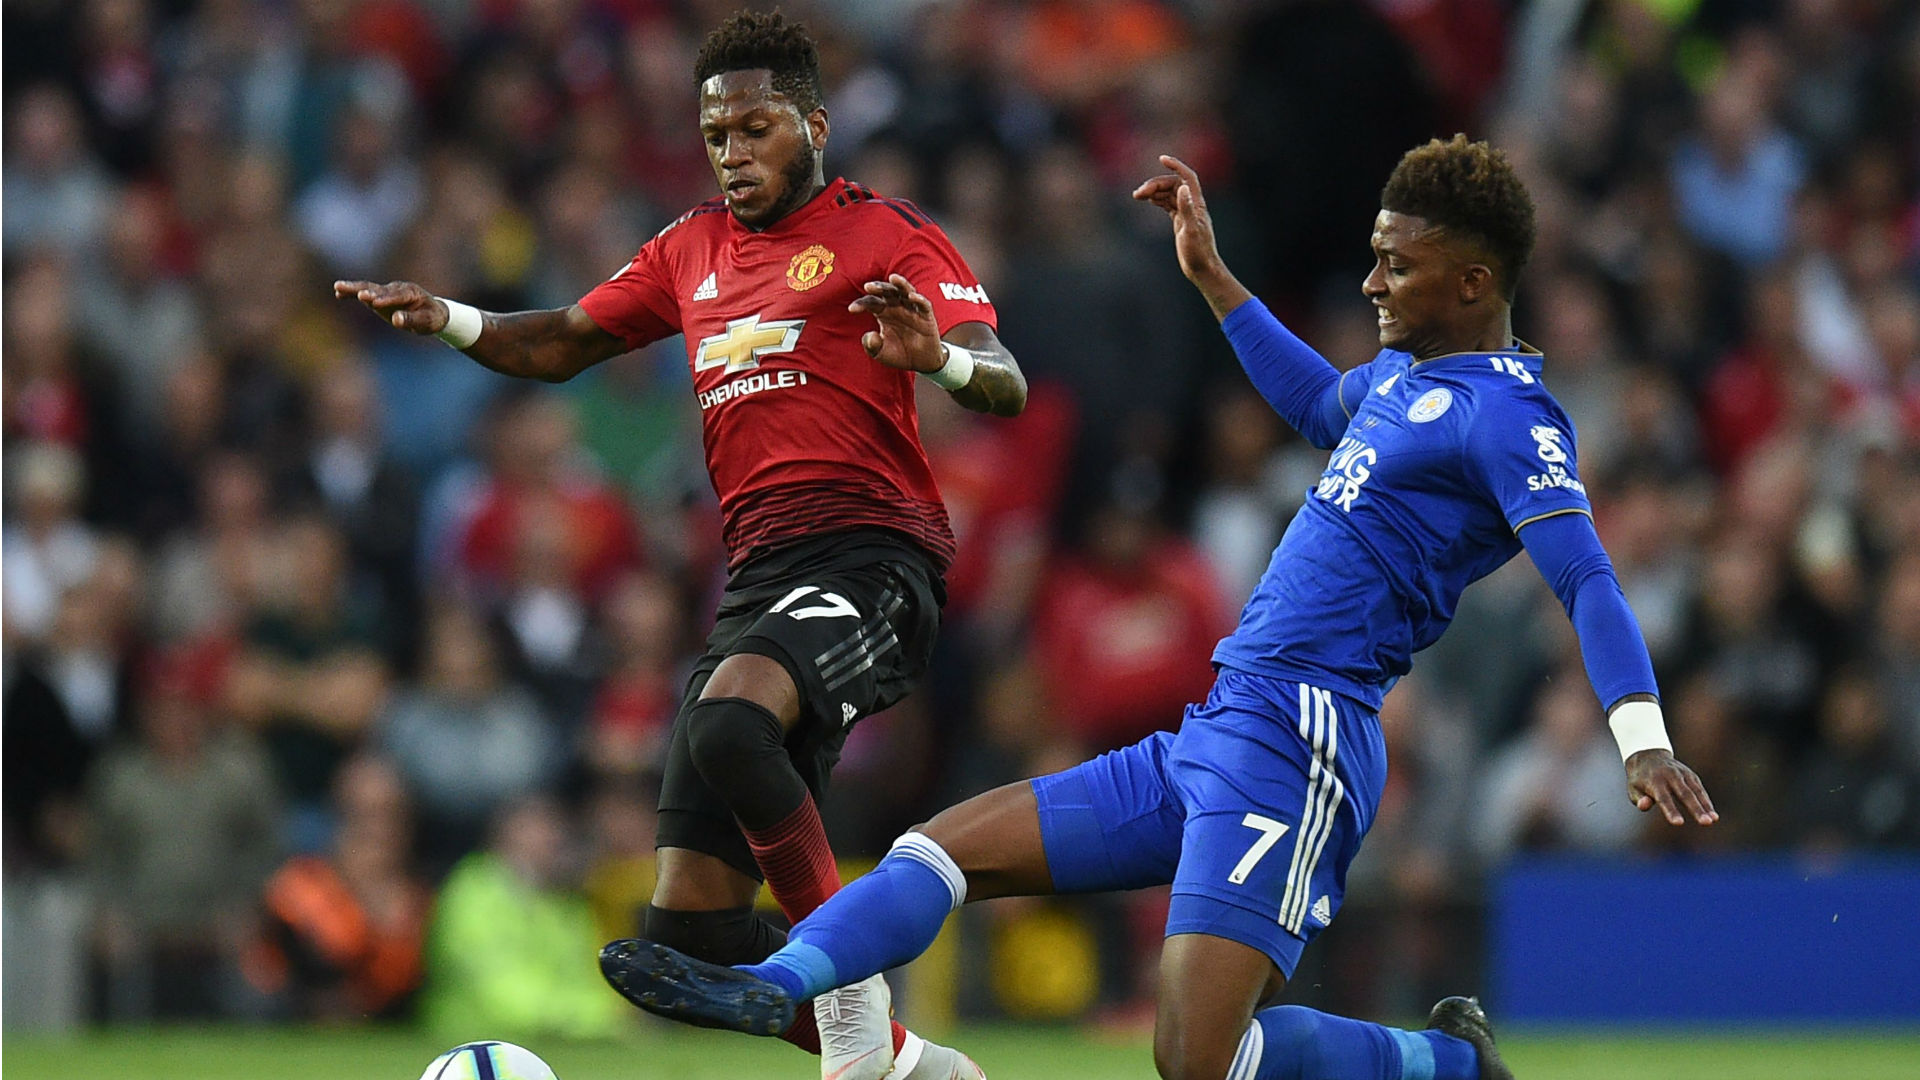 Fred Manchester United Leicester Premier League 10 08 2018